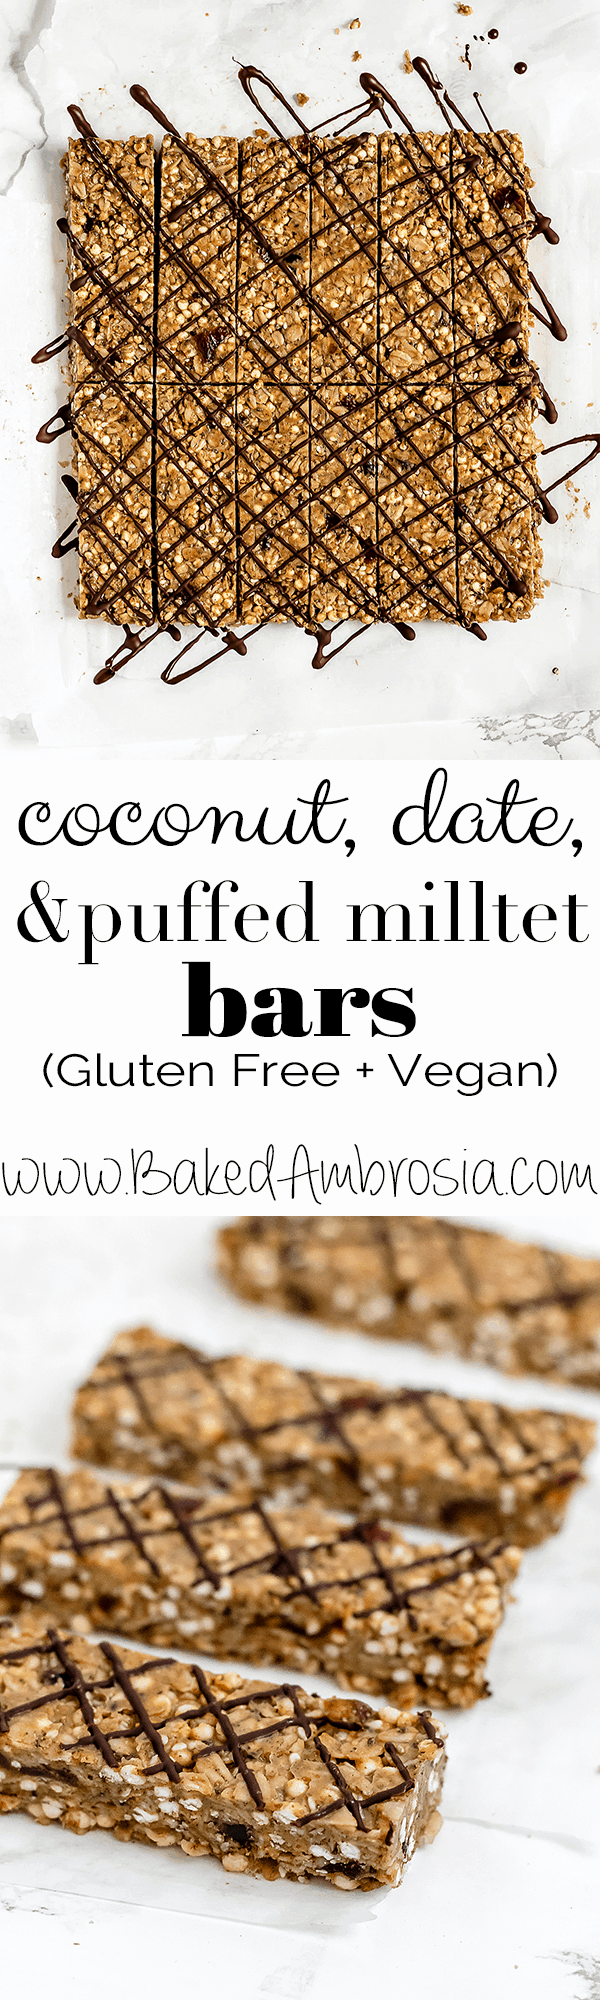 Coconut, Date, and Puffed Millet Bars (Gluten Free + Vegan)